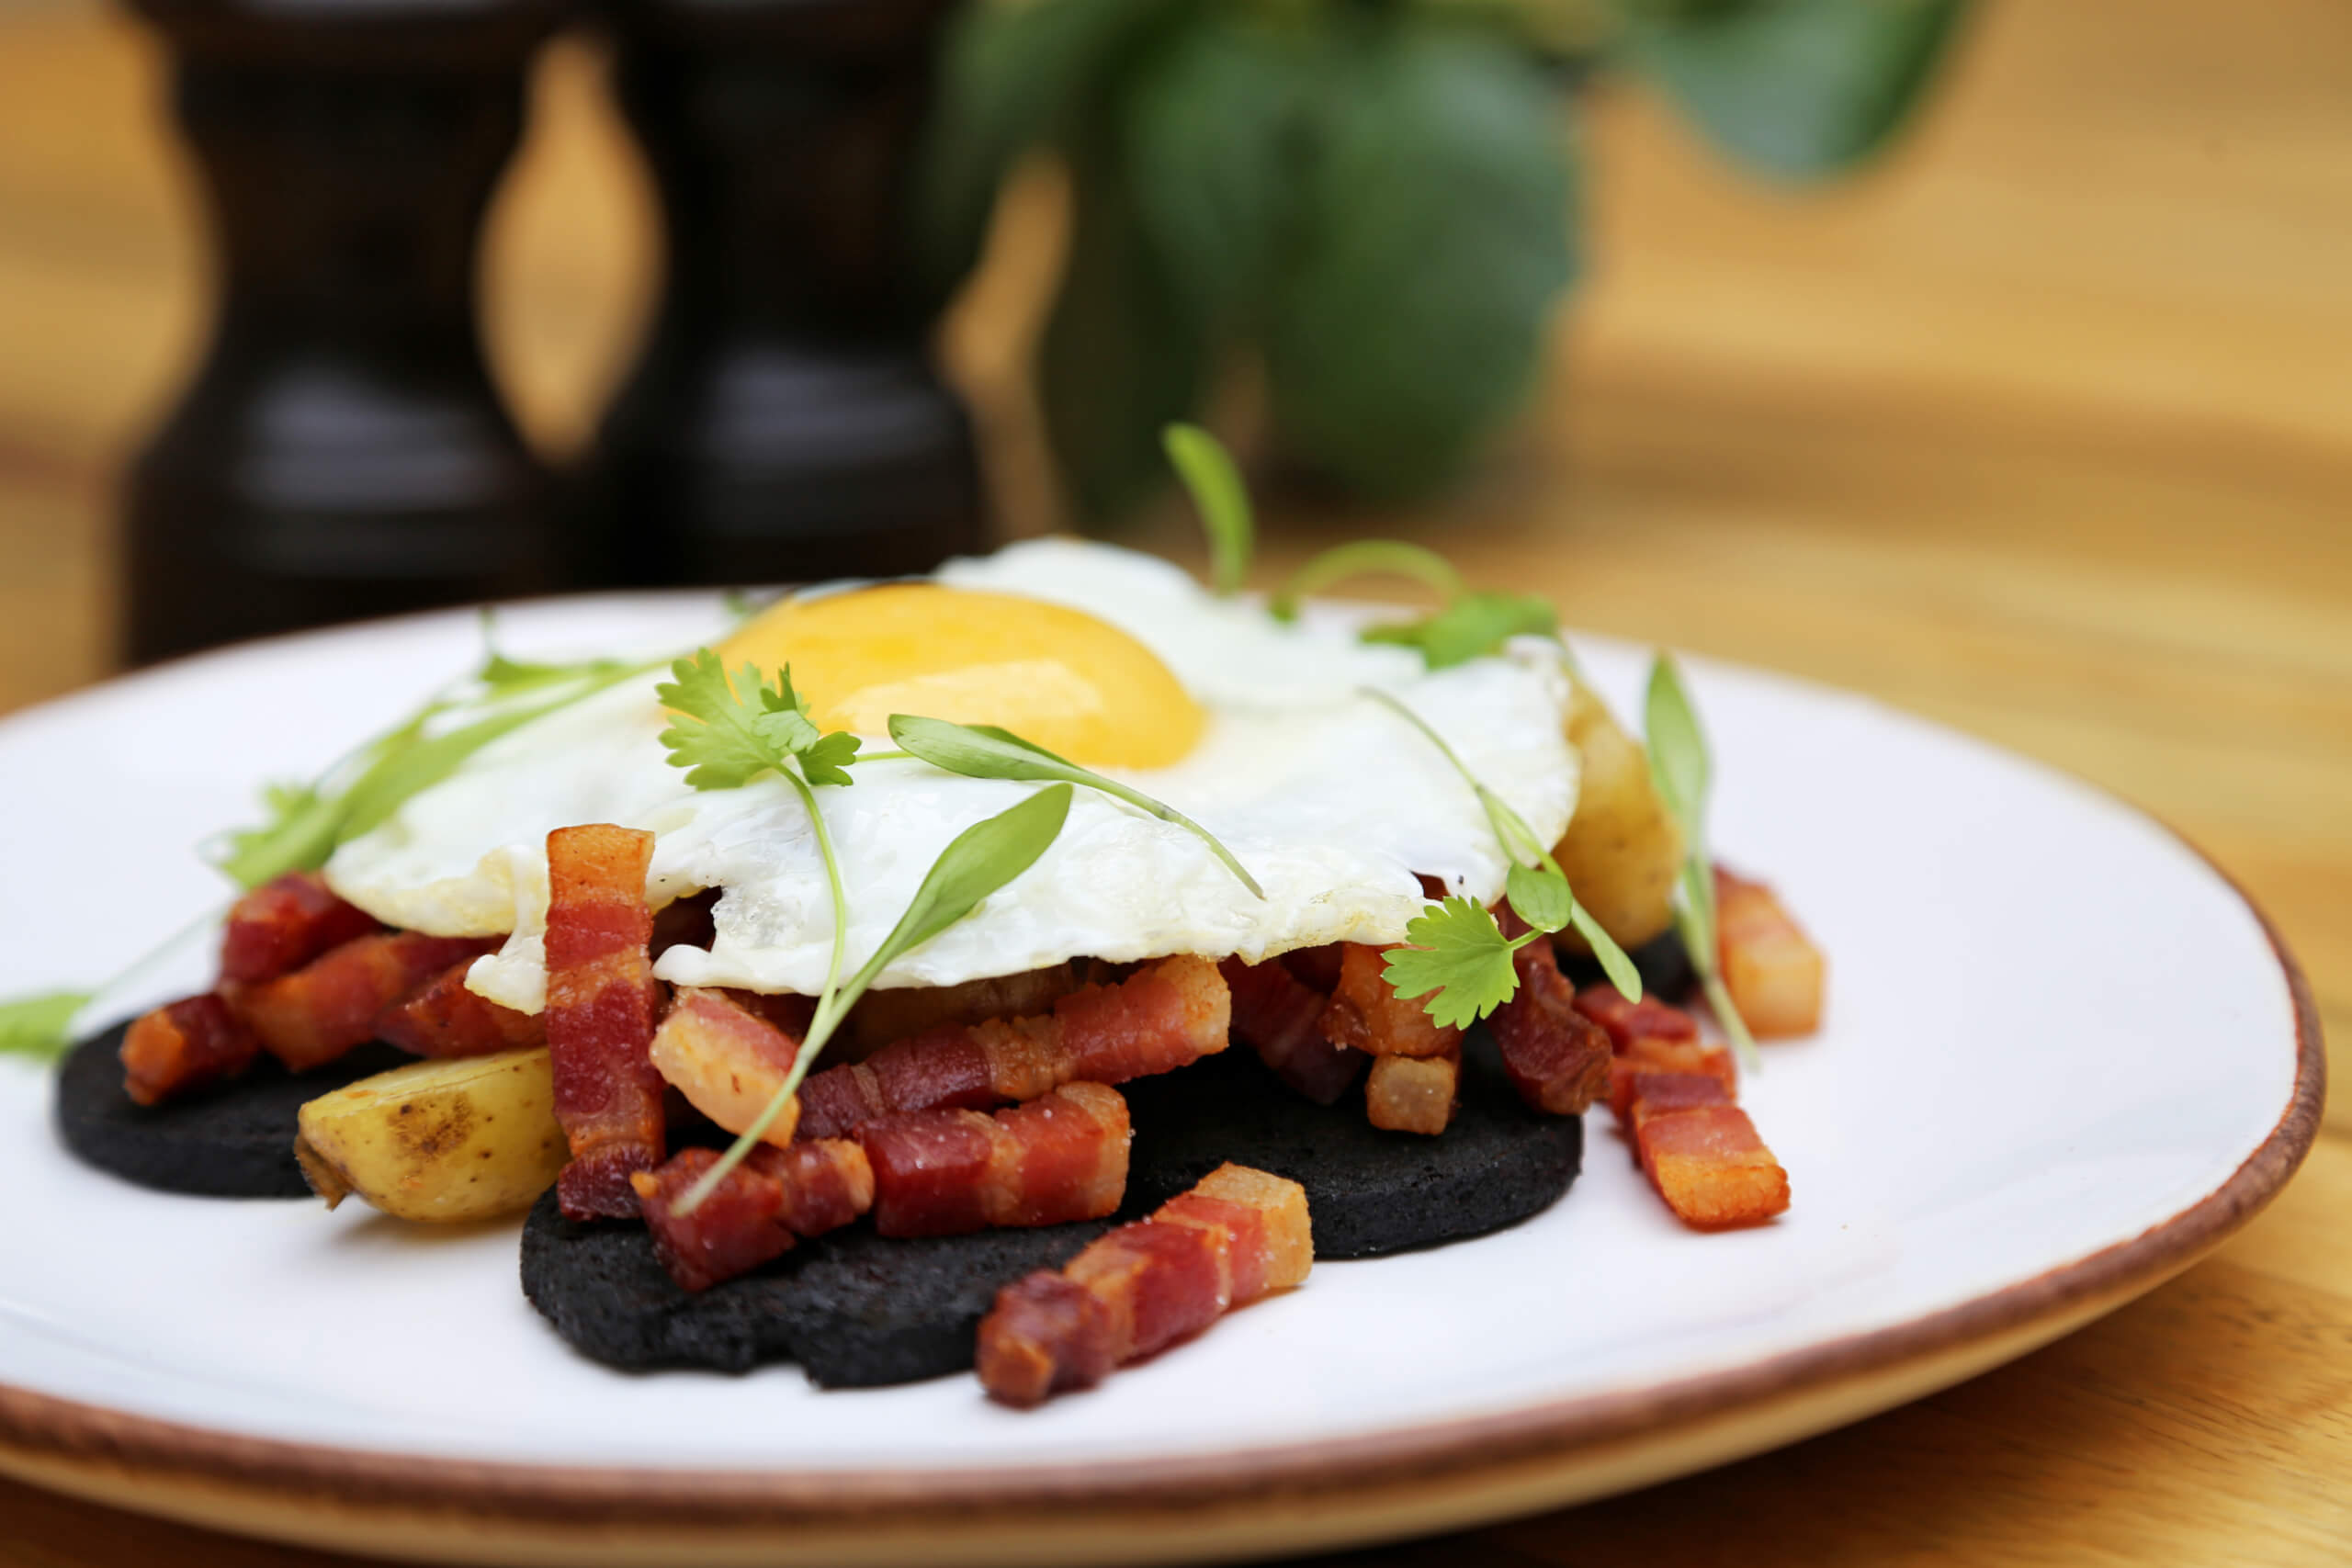 Sauteed Jersey Royals with bacon, black pudding and egg sunny side up